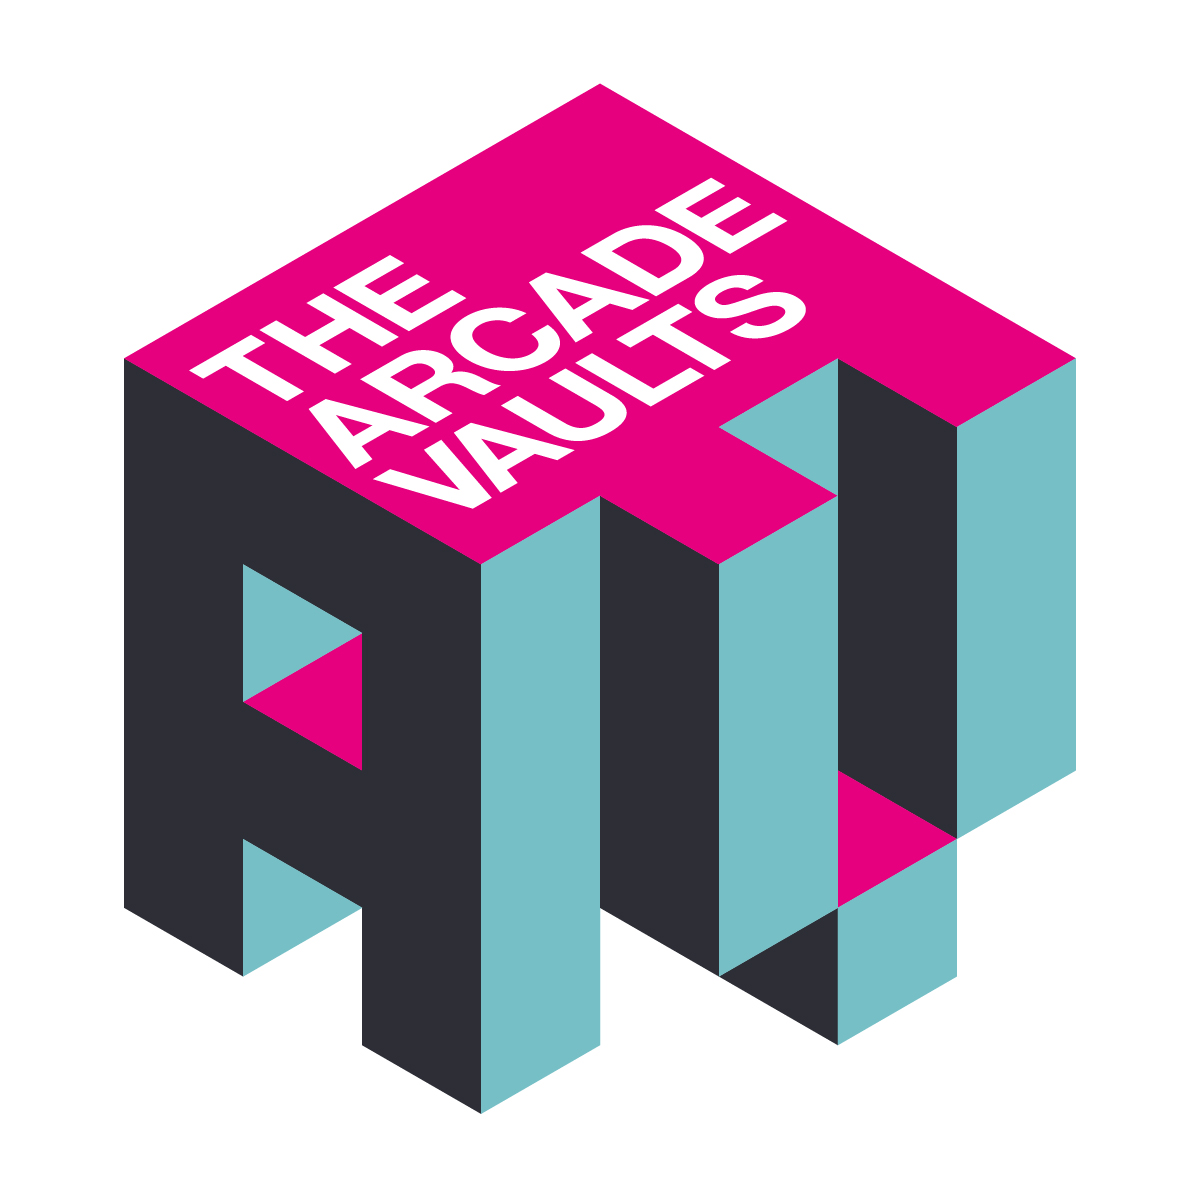 The Arcade Vaults logo